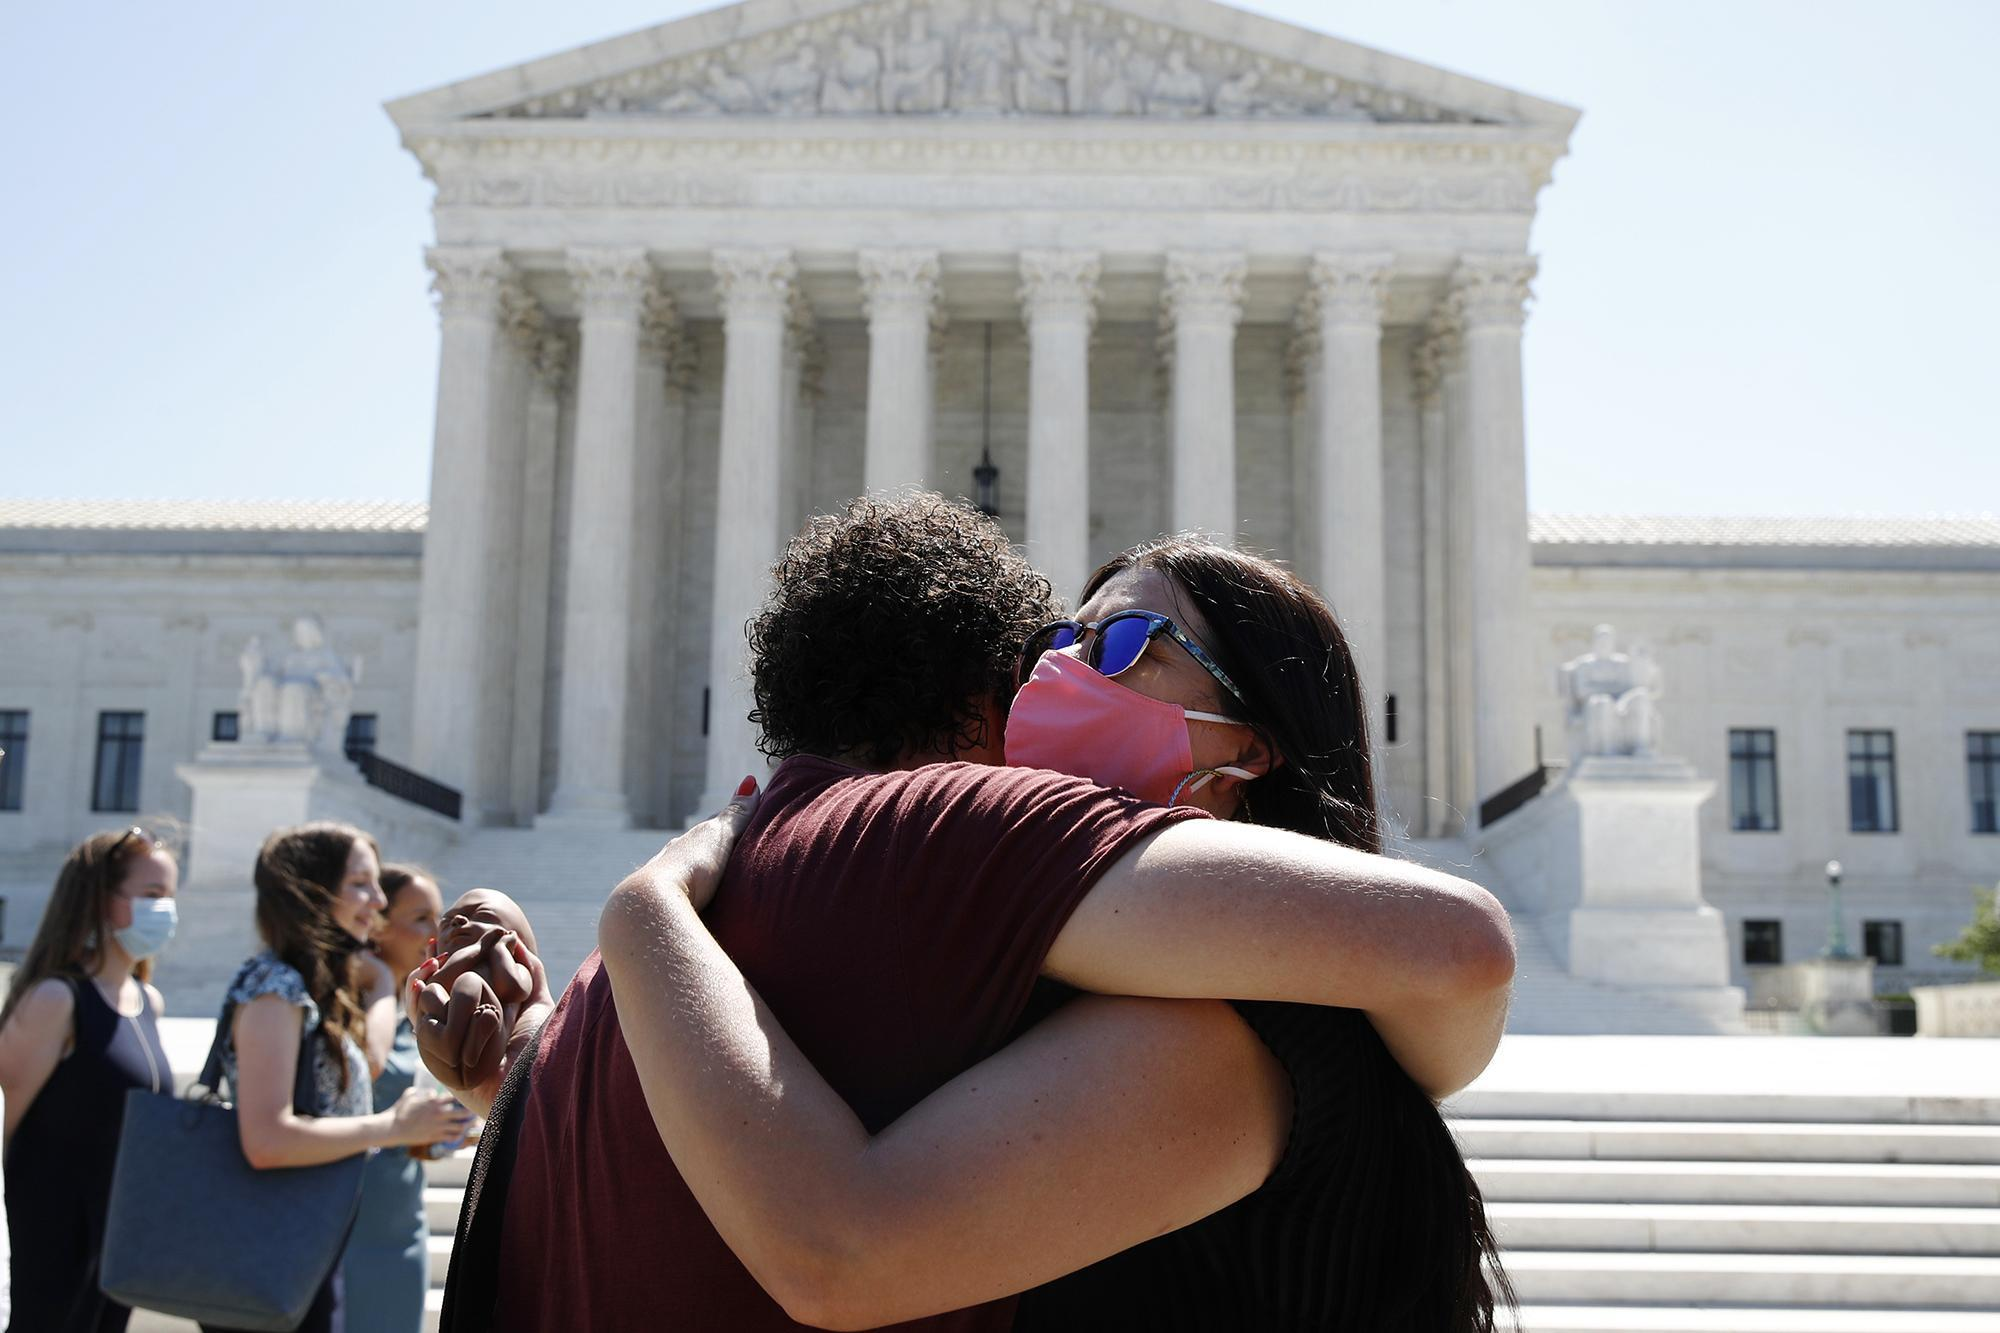 Pro-life demonstrators embrace outside of the Supreme Court on Monday.